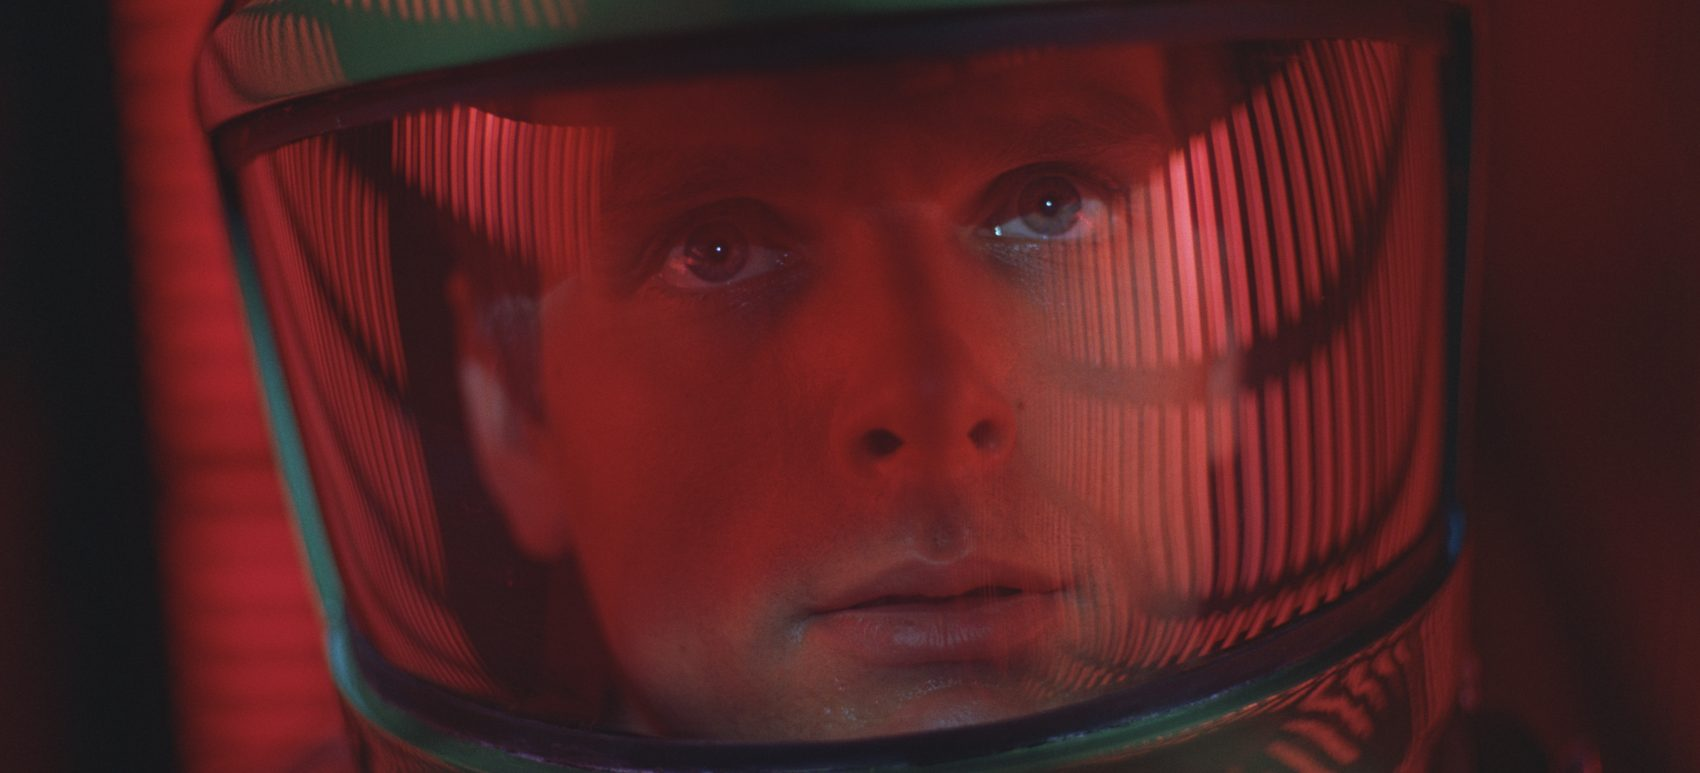 """Keir Dullea as astronaut Dave Bowman in """"2001: A Space Odyssey."""" (Courtesy of Warner Brothers)"""